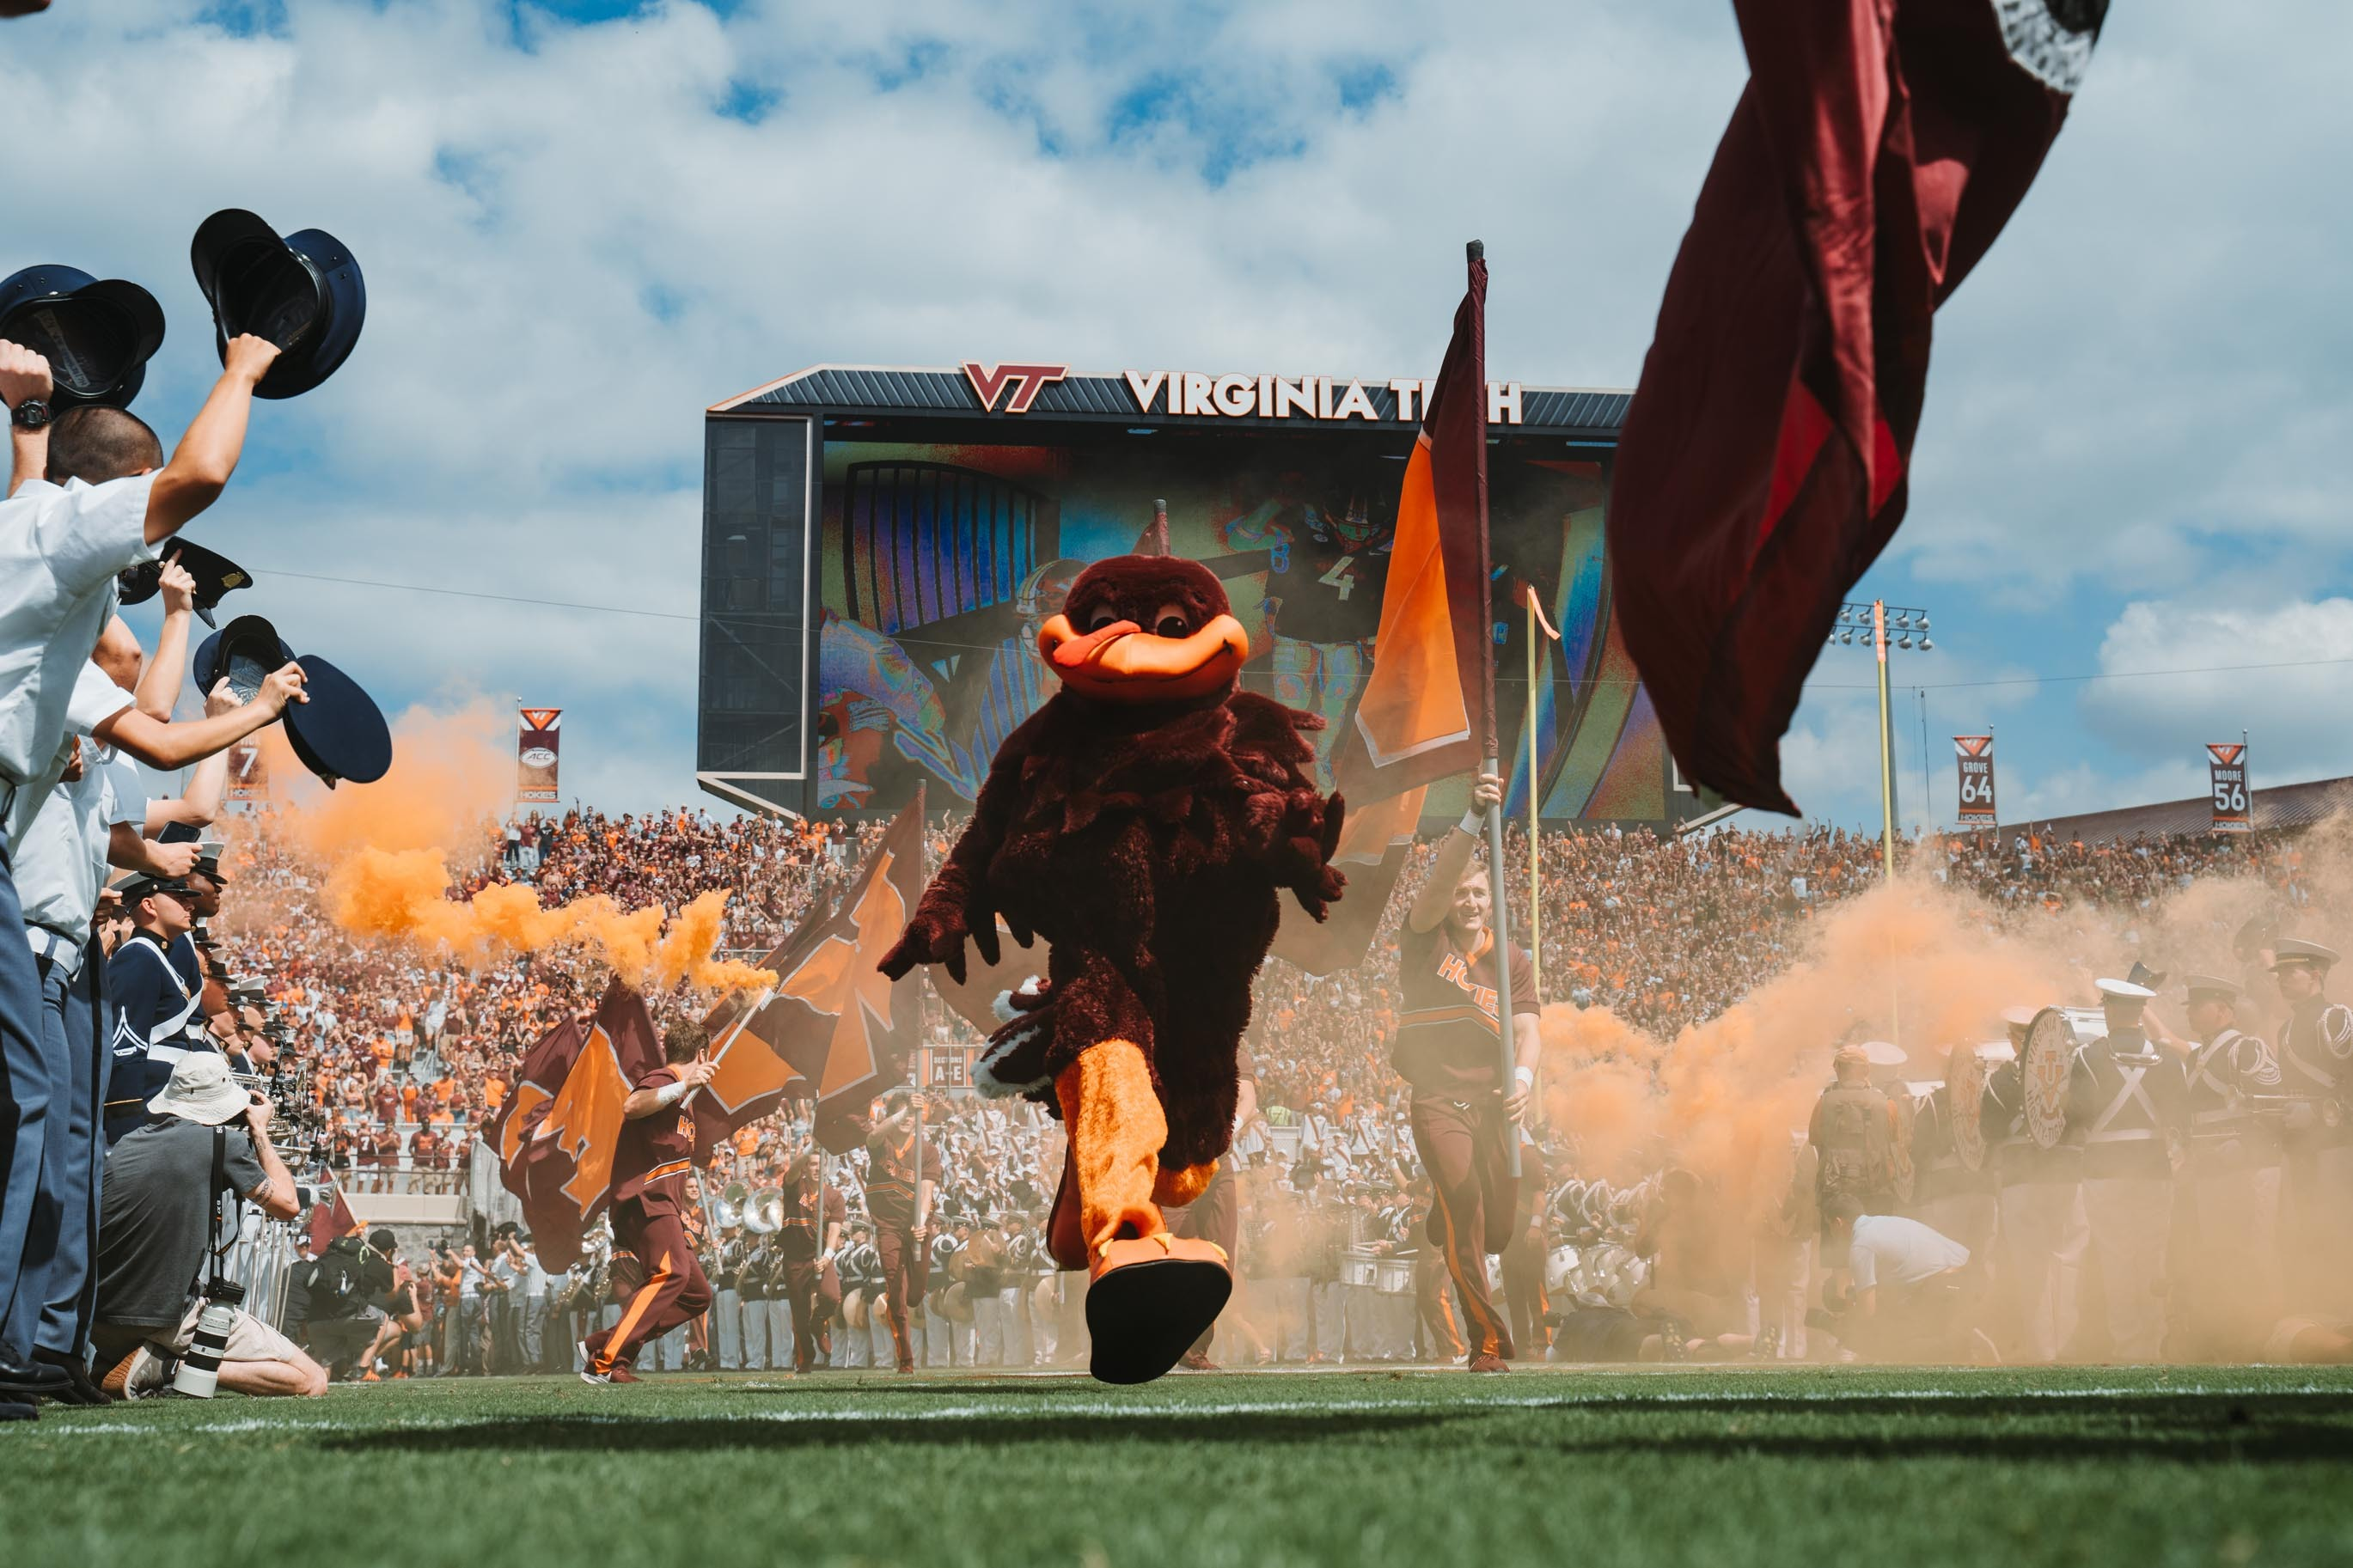 Virginia Tech Football Reveals Uniforms For 2019 Commonwealth Cup Against Virginia